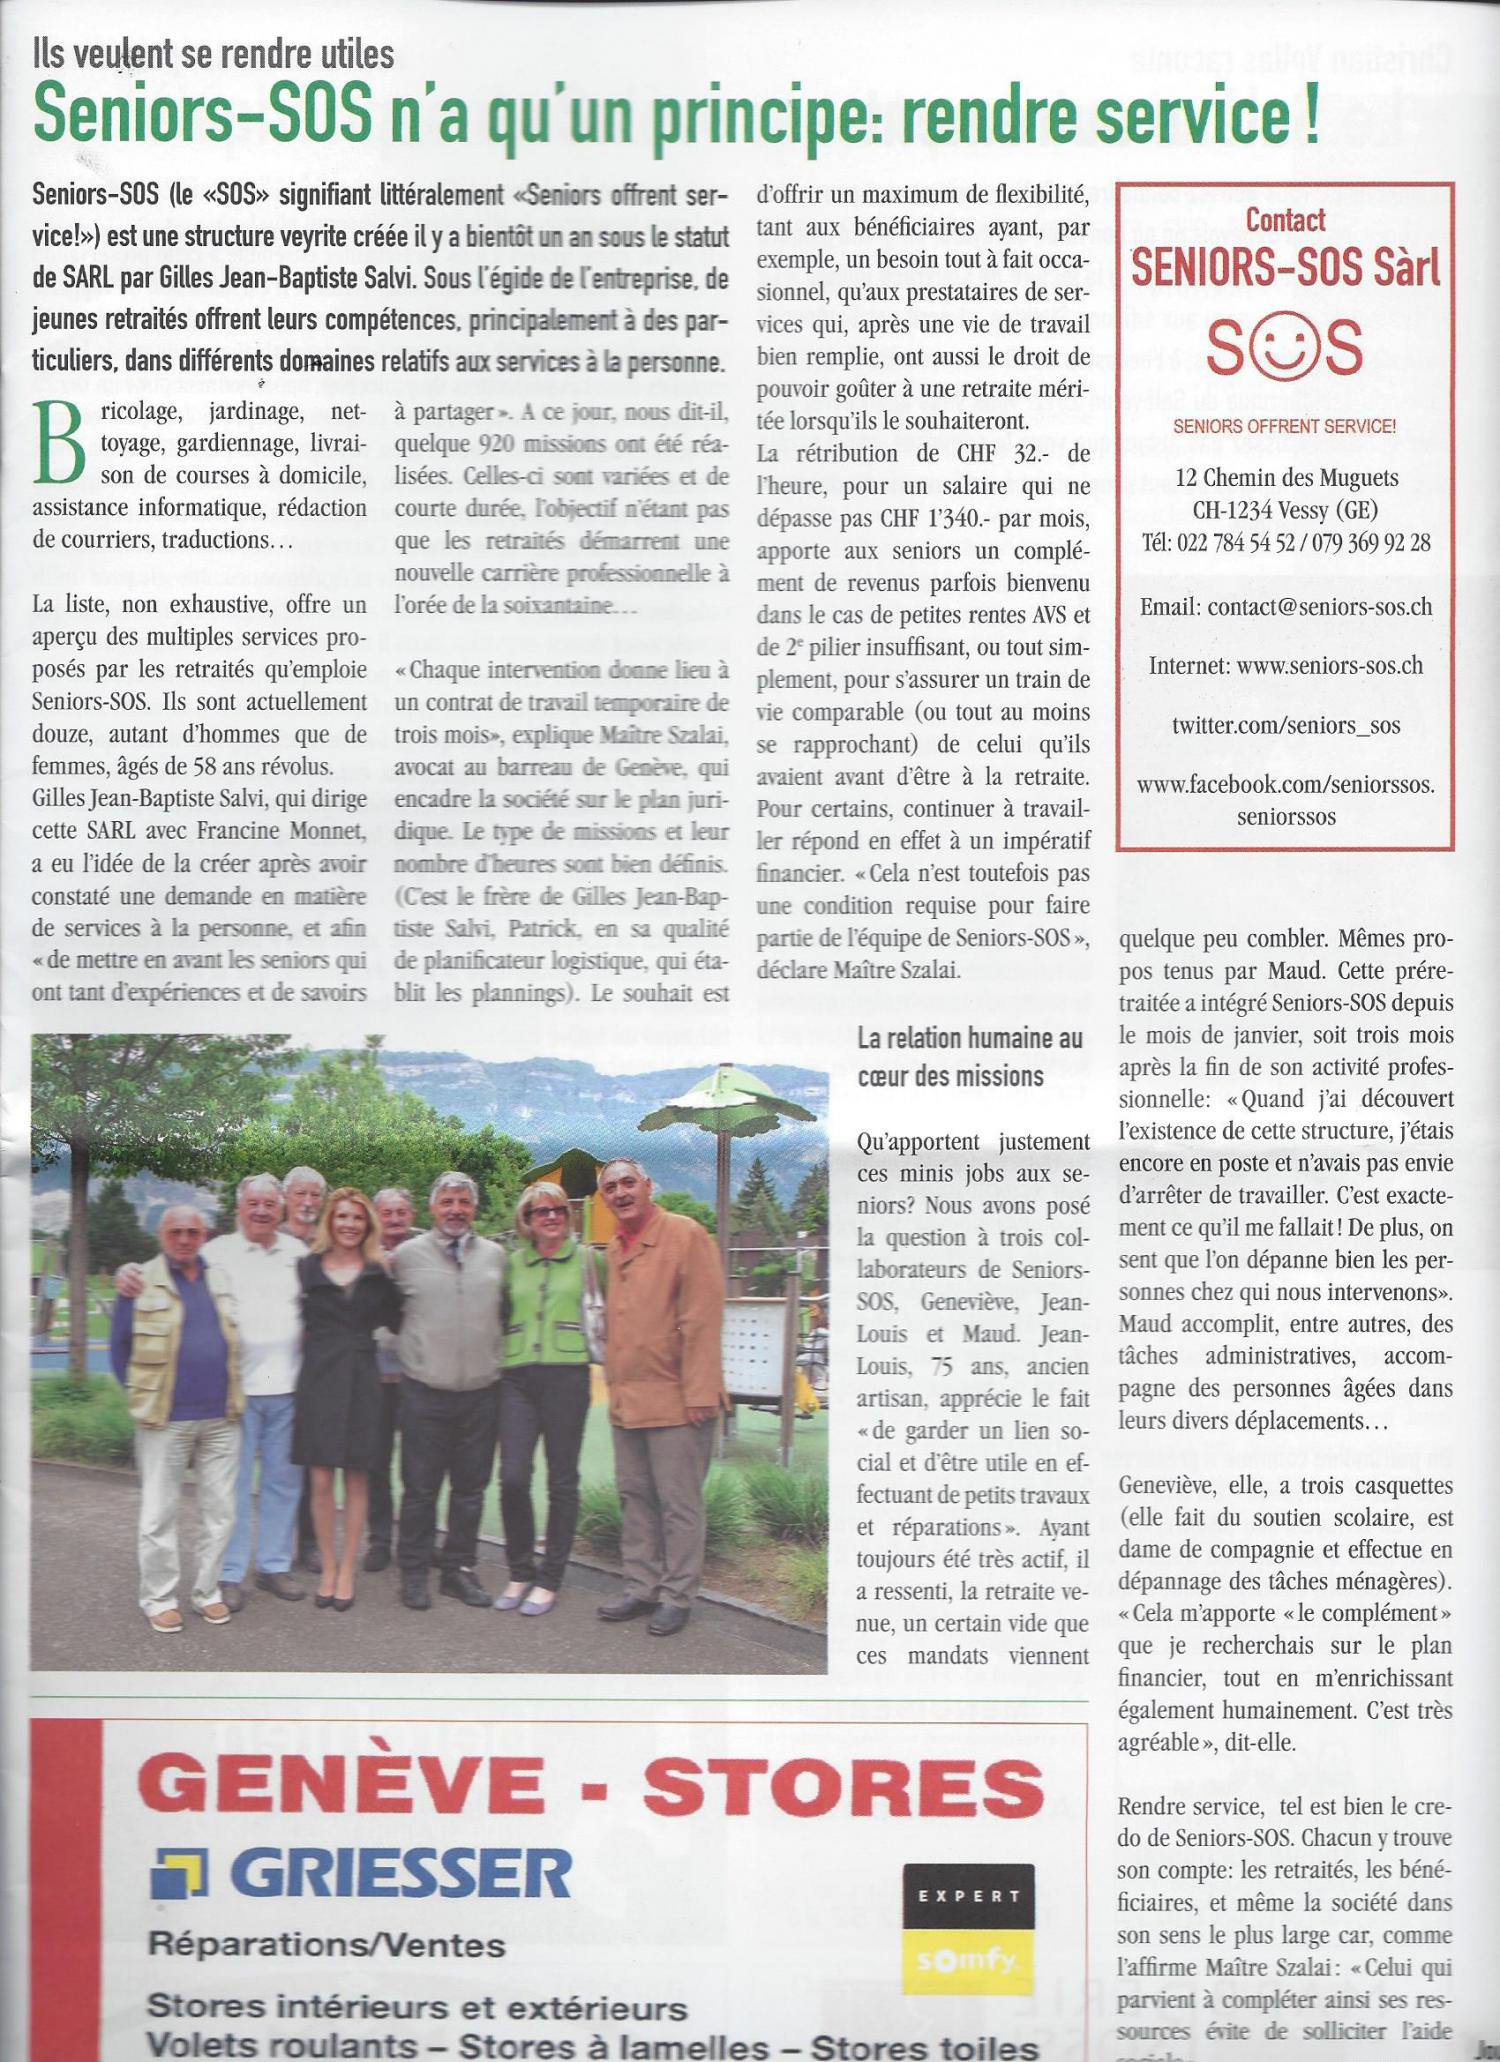 231300-Journal Communal de Veyrier Article (1)